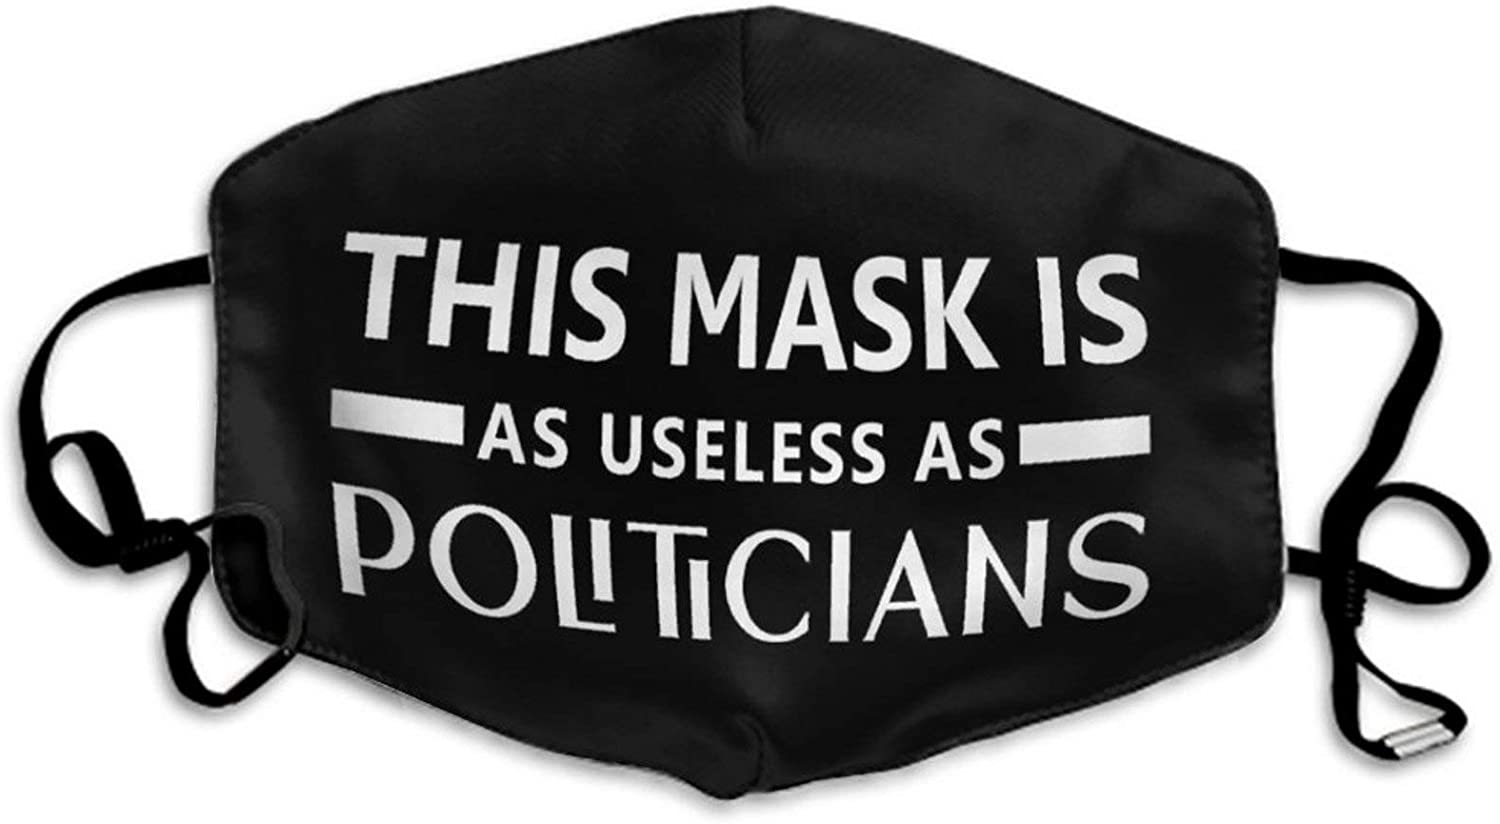 AMRANDOM Unisex Kids Face Scarf Mask This Mask is As Useless As Politicians Mouth Covers for Outdoors Home and Daily Use, Comfy Bandanas Balaclava Face Scarf Mouth Protection